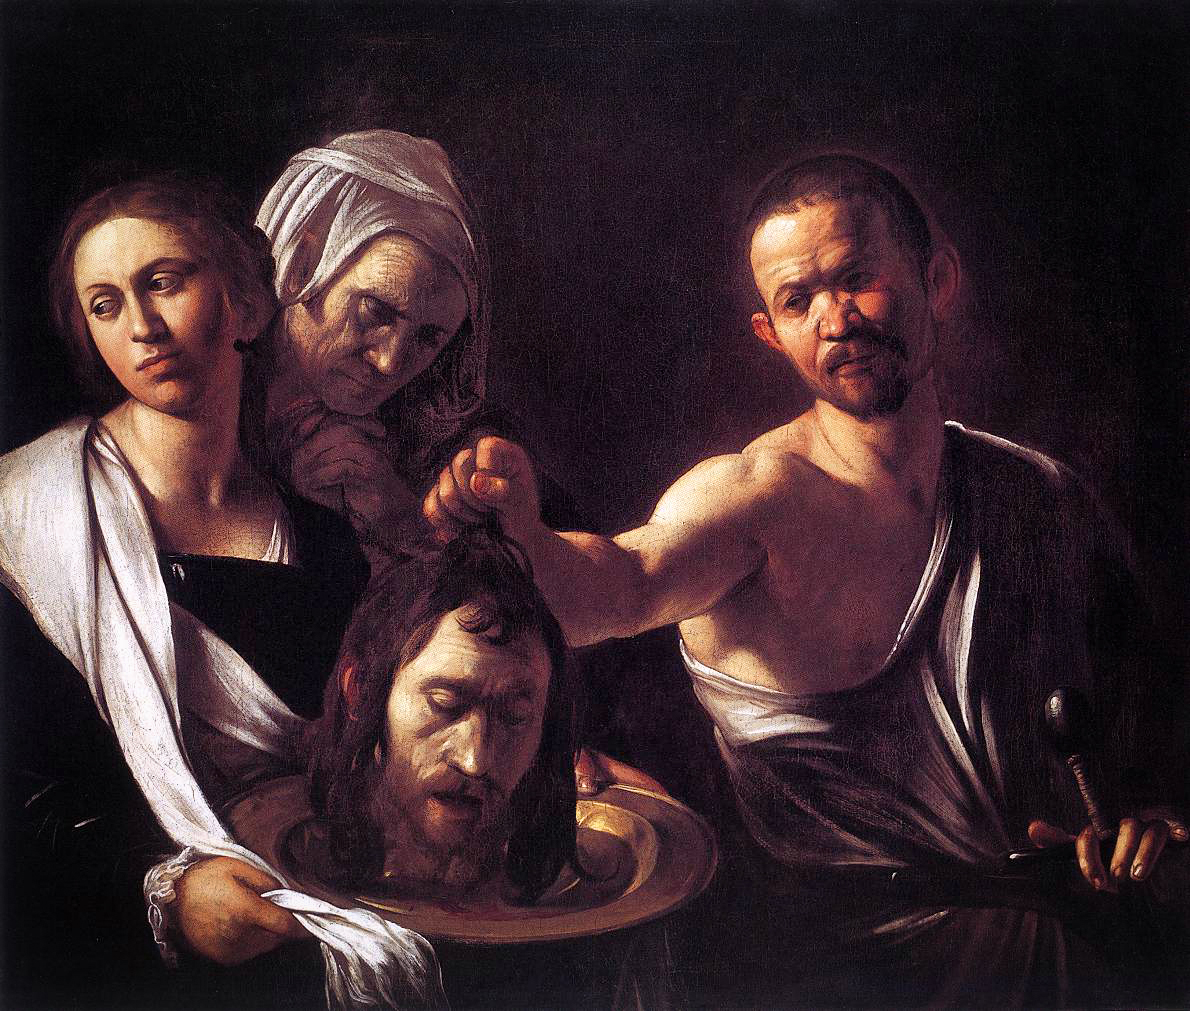 Salome with the head of St John the Baptist (1607), by Caravaggio